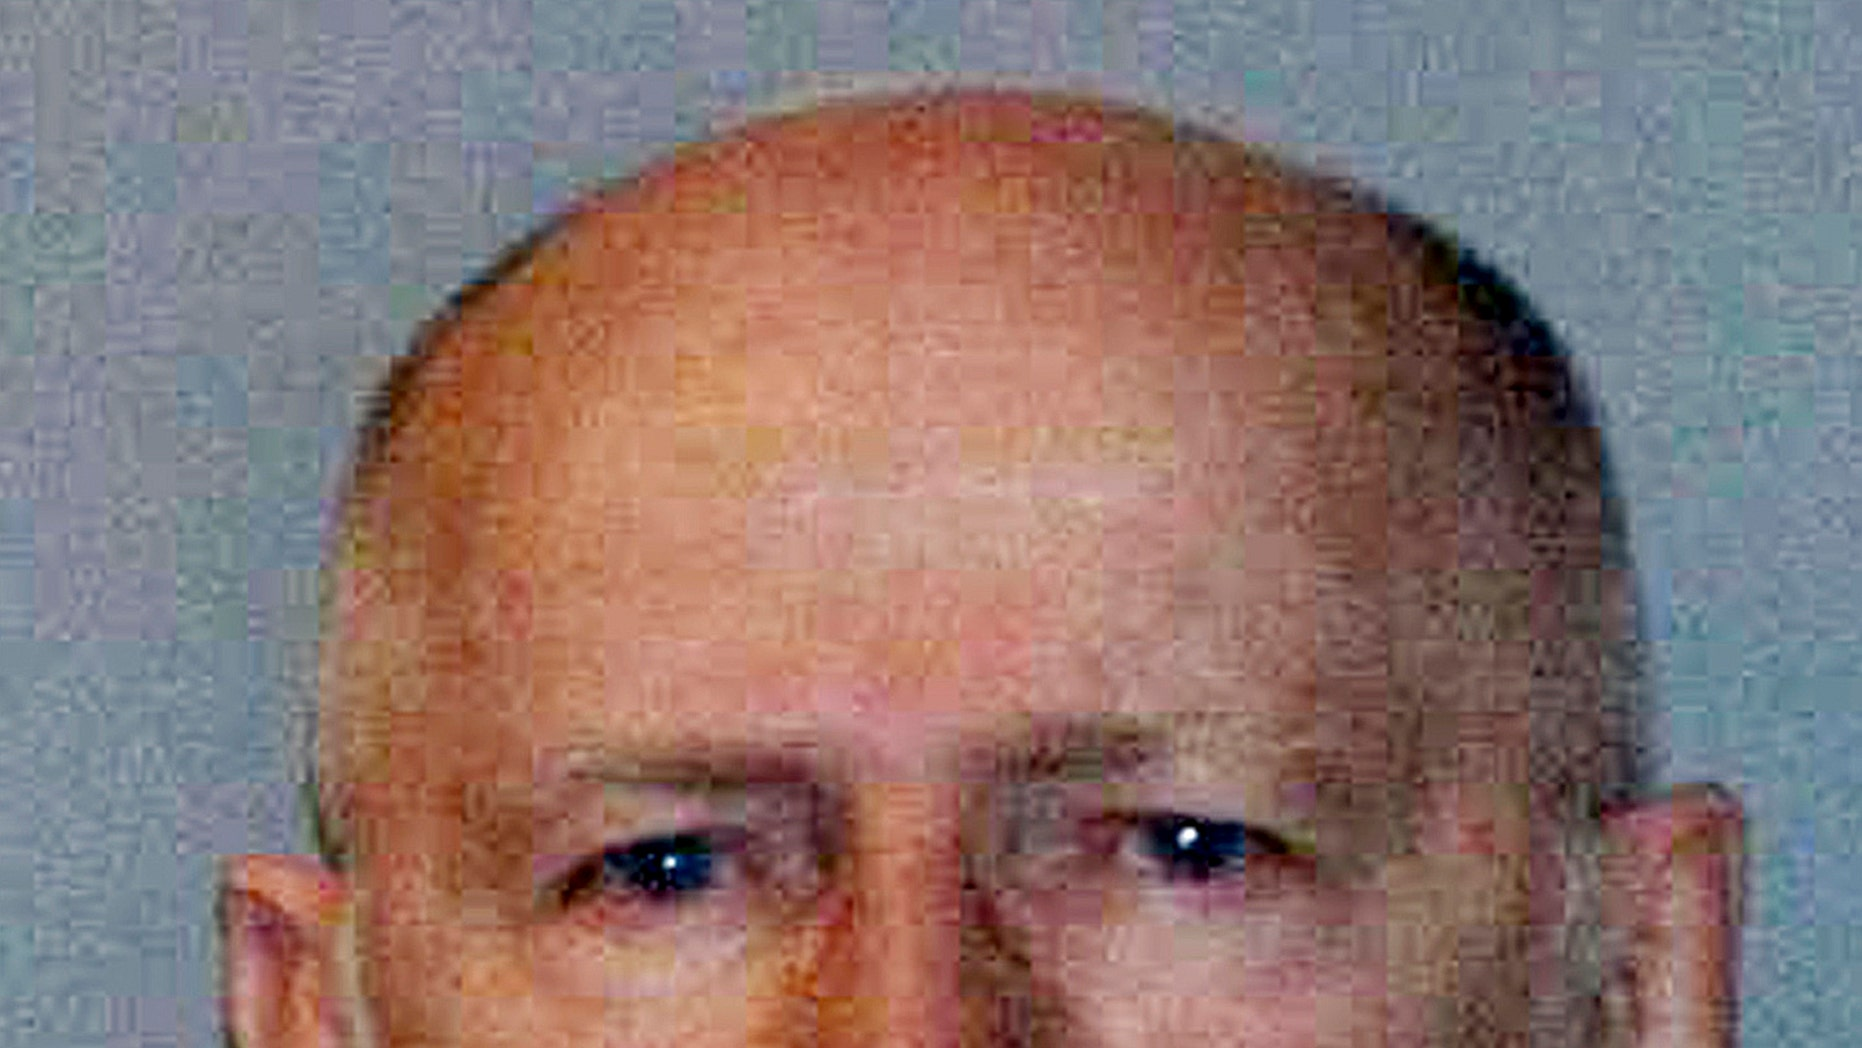 """FILE - A June 23, 2011 file booking photo provided by the U.S. Marshals Service shows James """"Whitey"""" Bulger.   Jury selection for Bulger's racketeering trial begins June 6, 2013 on an indictment that accuses him of participating in 19 murders. (AP Photo/U.S. Marshals Service, File)"""